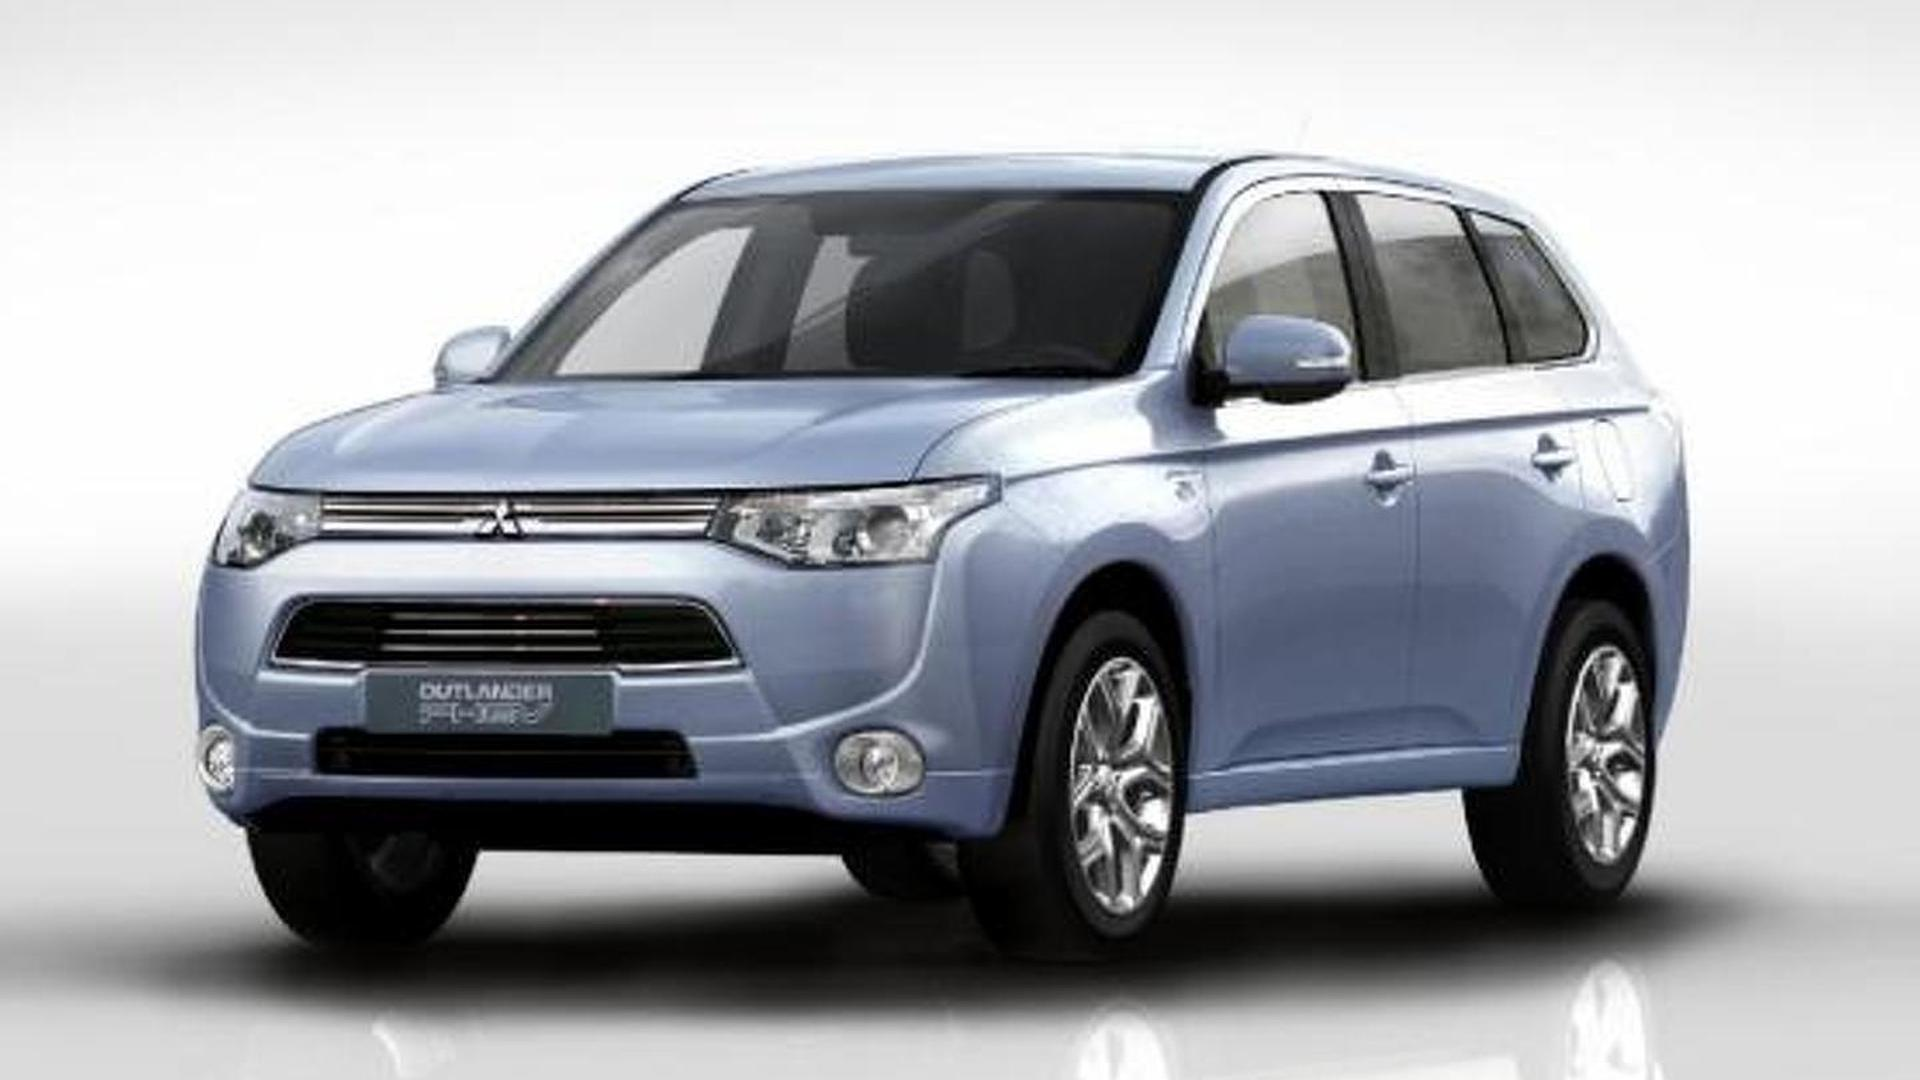 2016 Mitsubishi Outlander PHEV to feature revised styling & upgraded interior